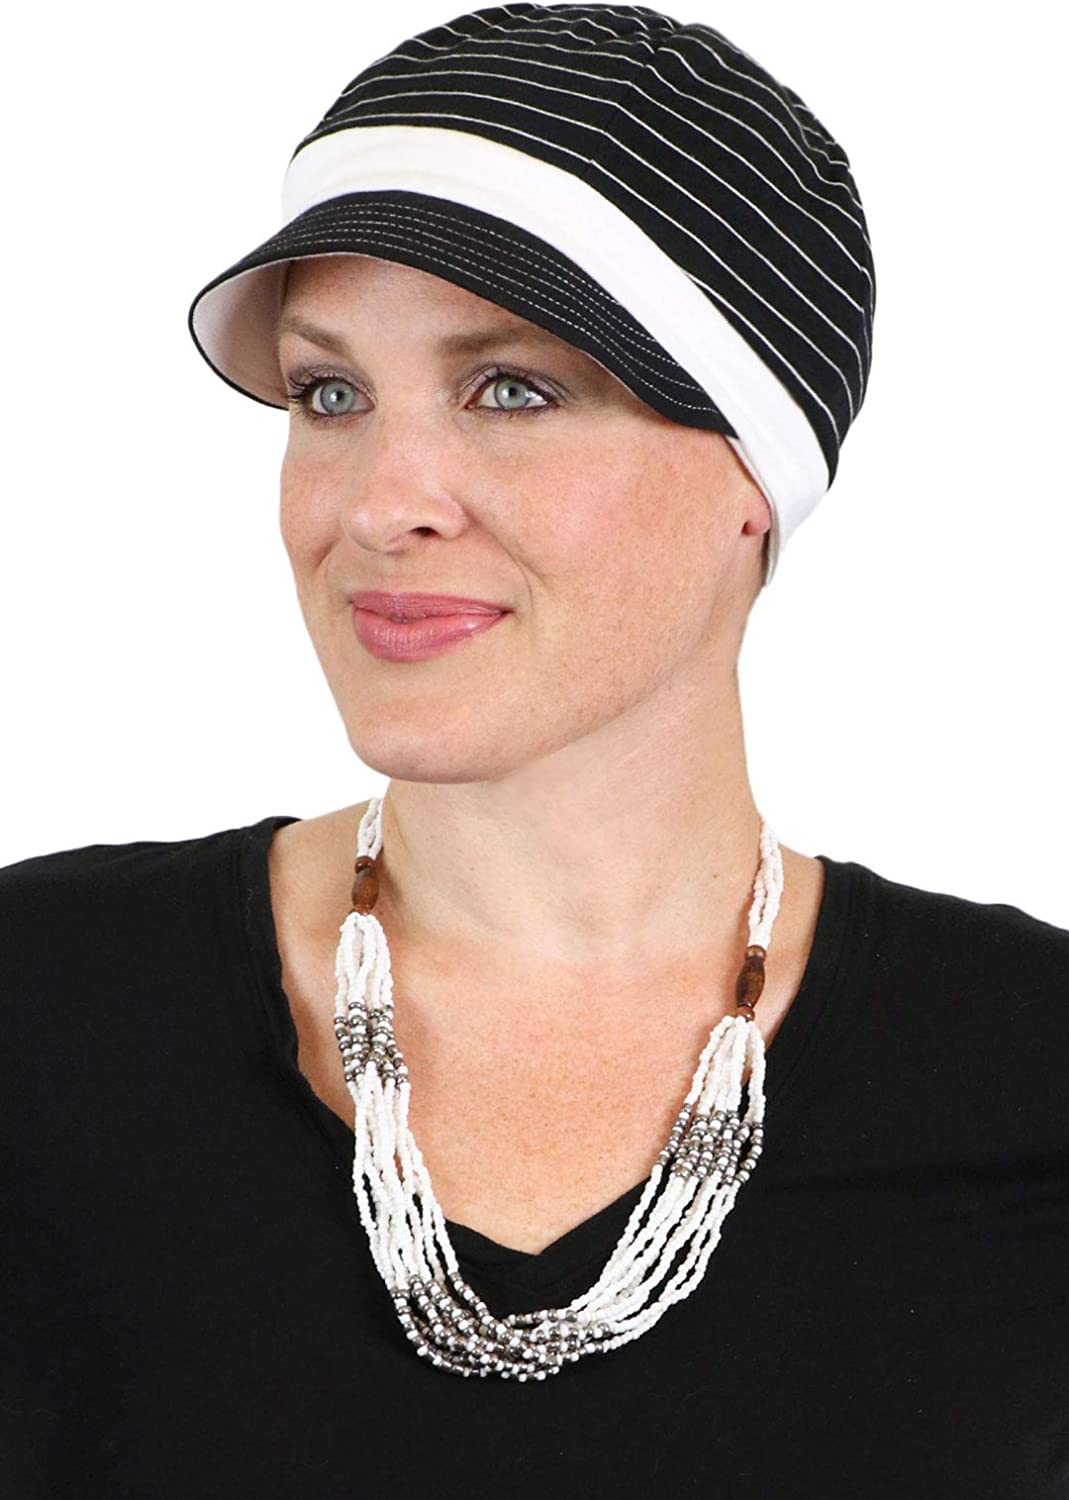 Chemo Hats for Women Cancer Headwear Headcoverings Cute Baseball Caps Whimsy Sport